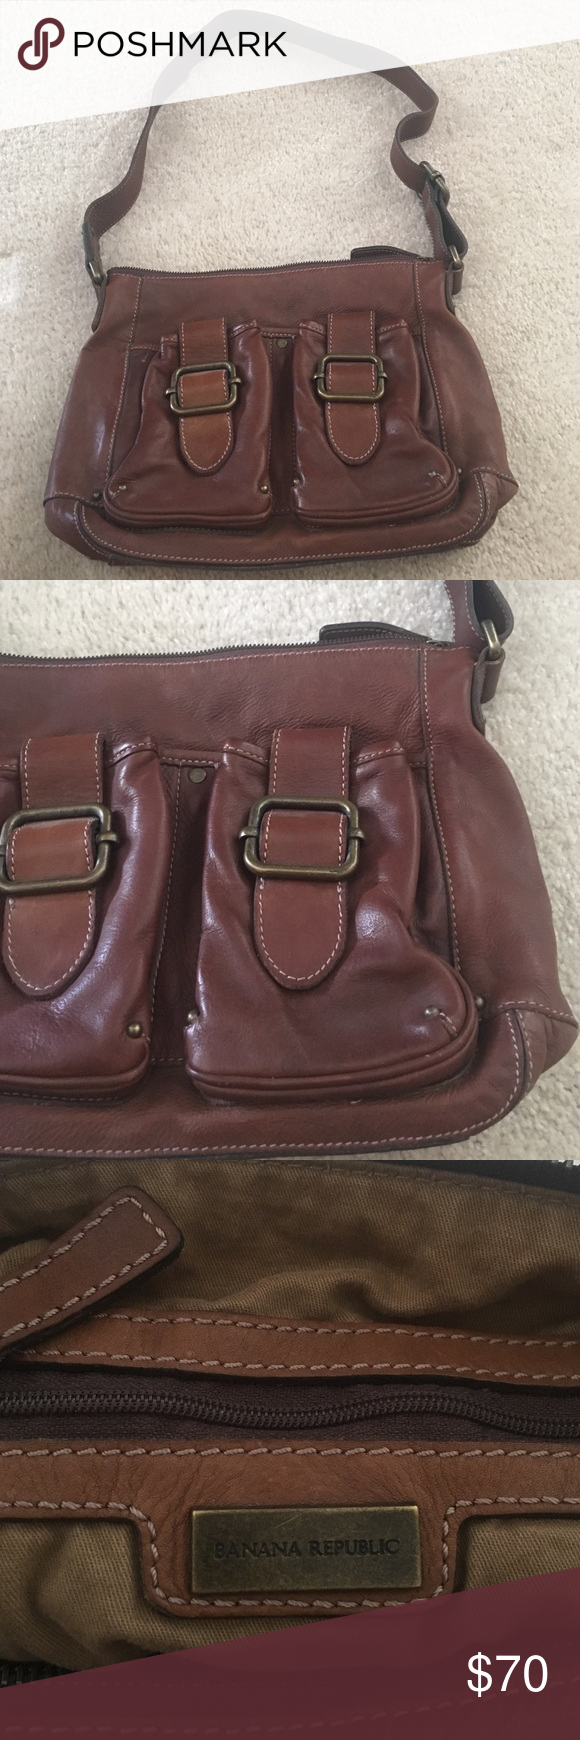 Banana republic leather purse Perfect condition no stains or scratches! Bags Satchels